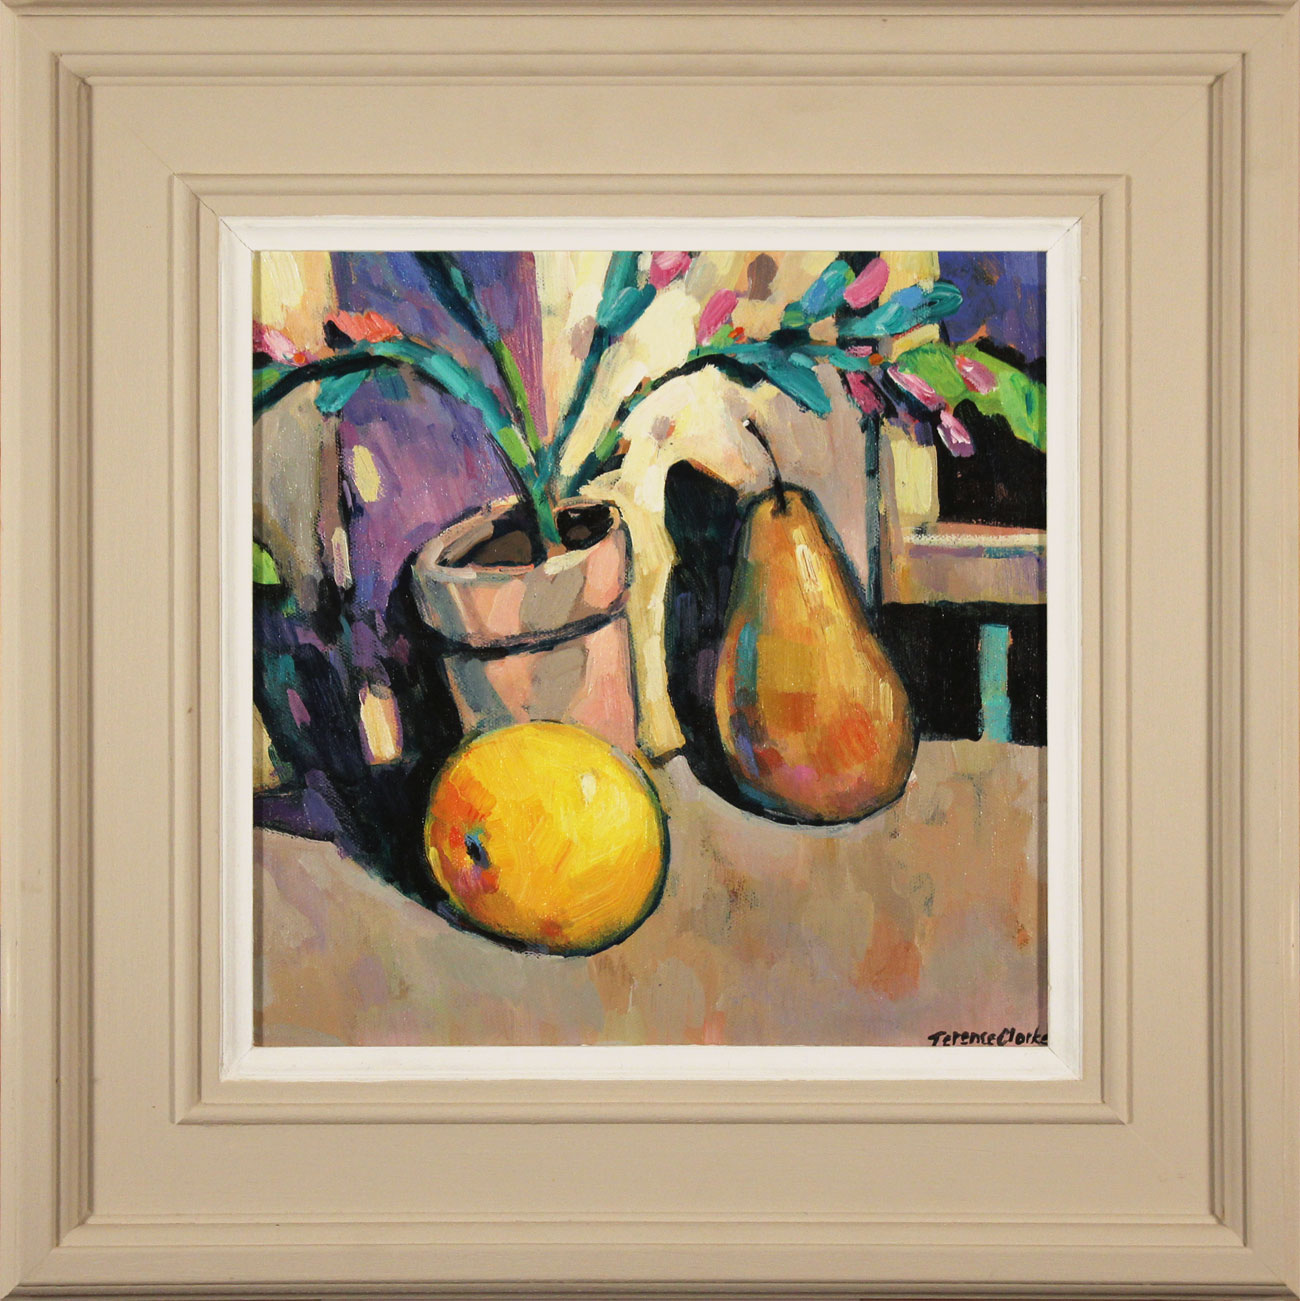 Terence Clarke, Original acrylic painting on canvas, The Christmas Cactus and Pear, click to enlarge